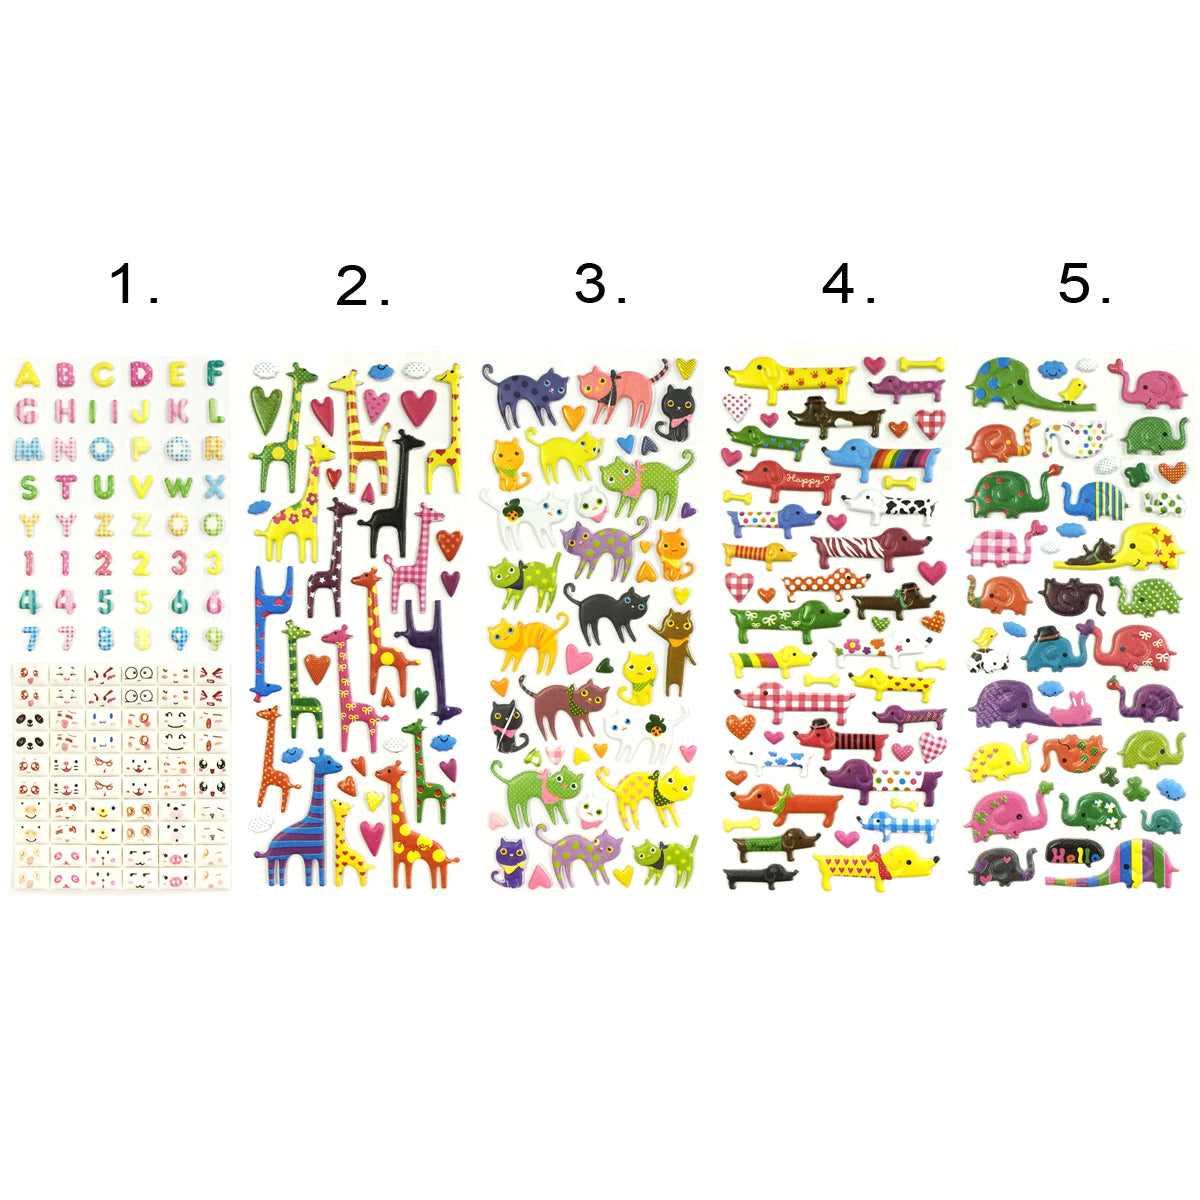 Wrapables Adorable Animal Puffy Stickers for Scrapbooking, Stationery, Diary, and Album (Set of 5)